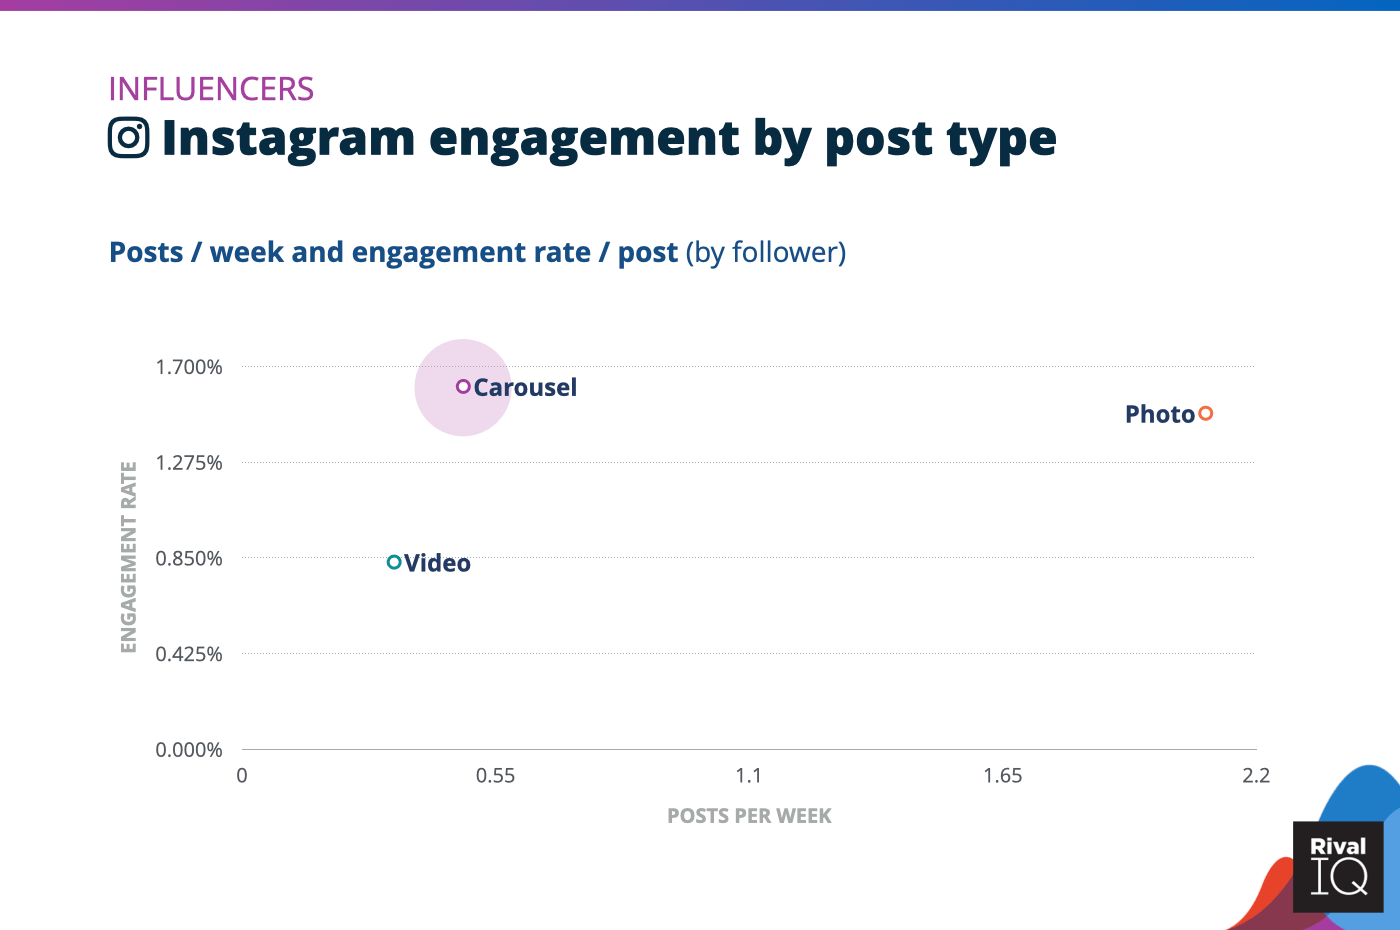 Chart of social media benchmarks for Instagram posts per week and engagement rate by post type, Influencers